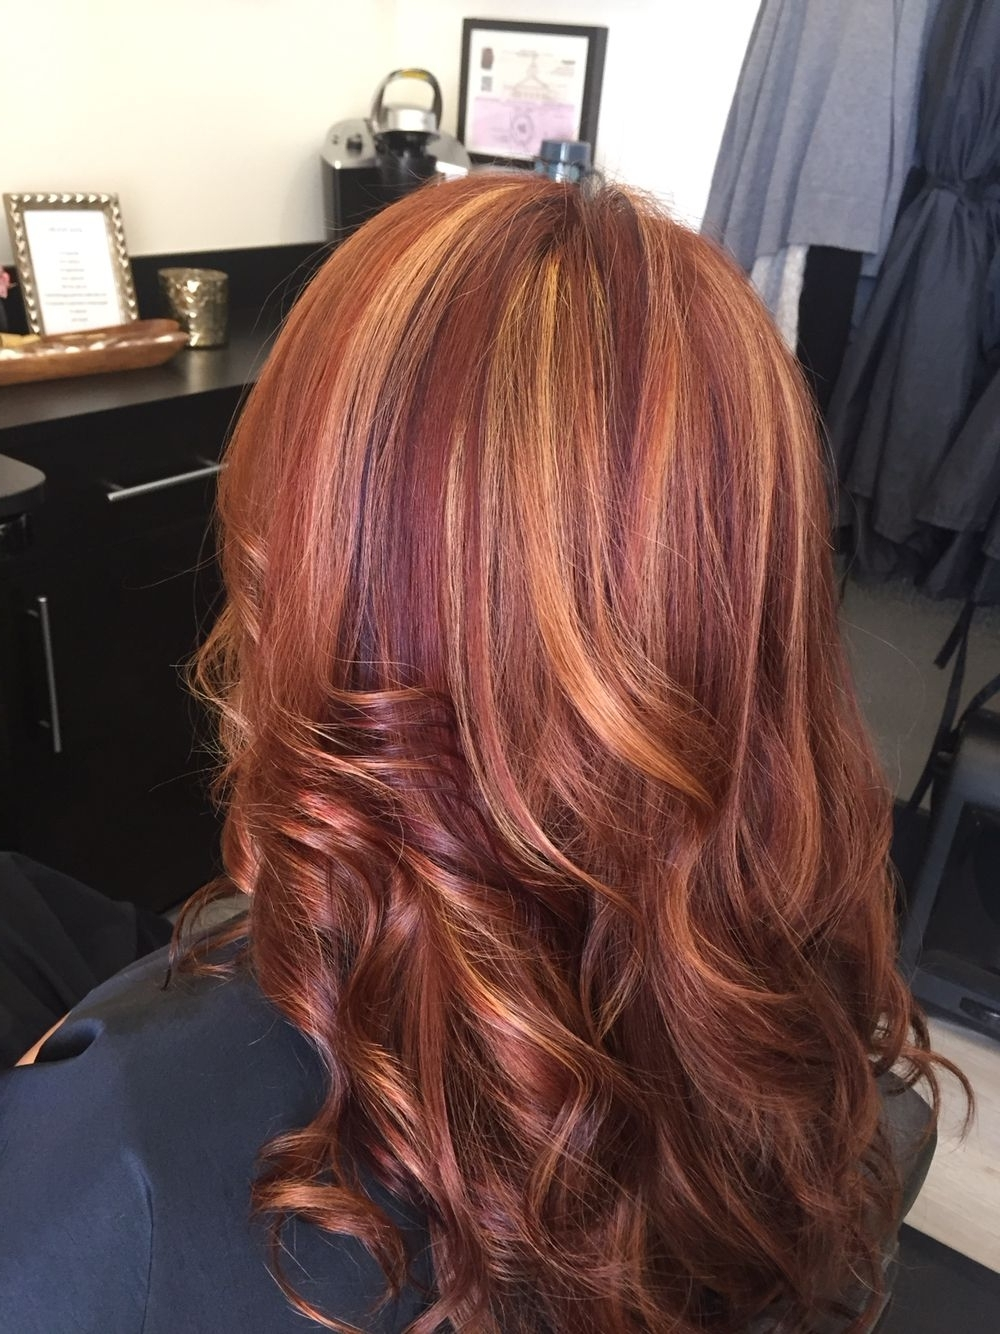 Red Hair With Blonde Highlights And Violet Low Lights Intended For Well Known Light Copper Hairstyles With Blonde Babylights (Gallery 4 of 20)